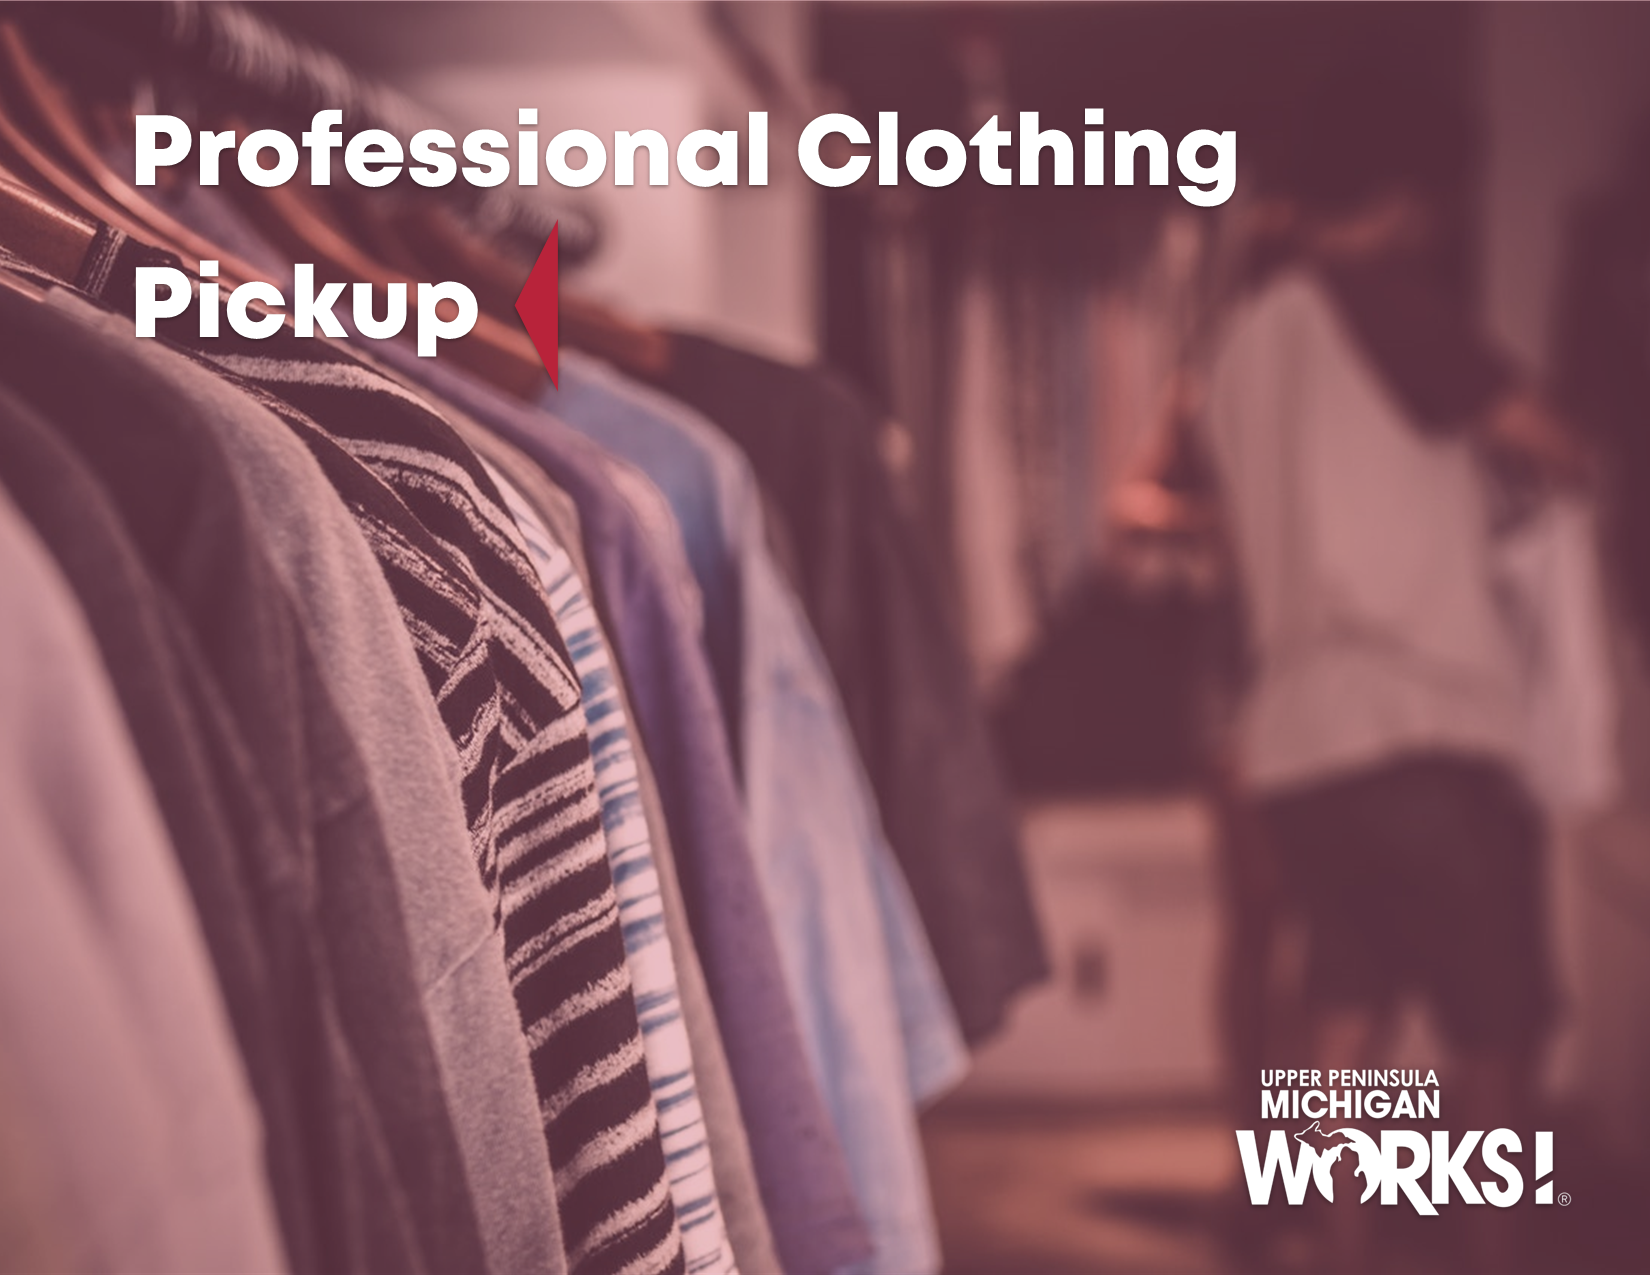 Professional clothing pickup social media graphic with UPMW logo.